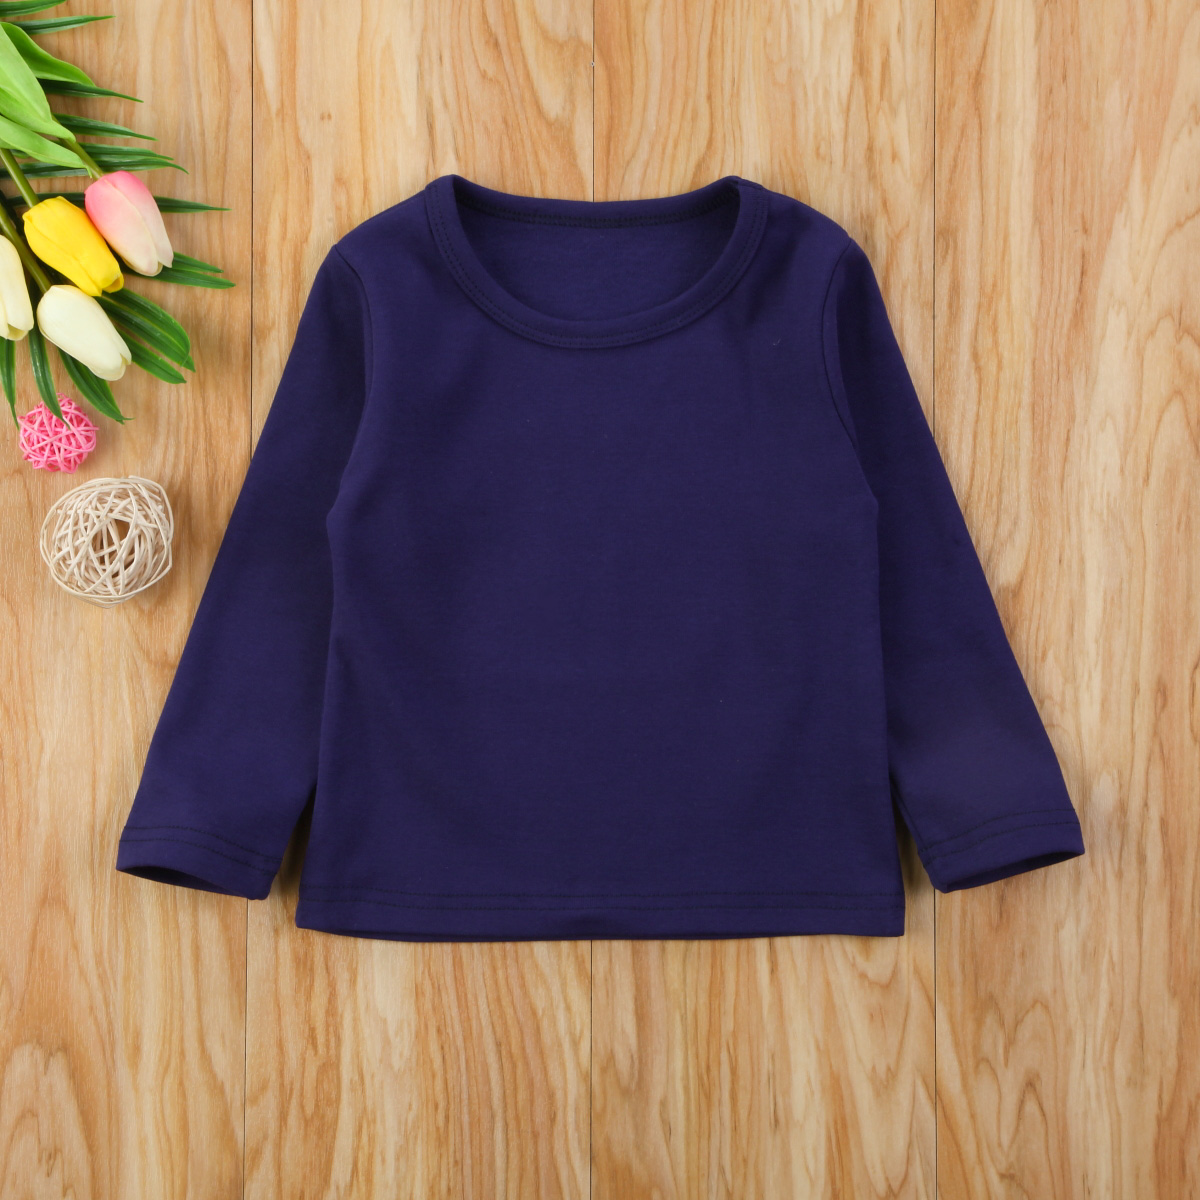 Autumn Cotton Newborn Infant Kids Baby Boys Girls Clothes Solid Cotton Soft Clothing Long Sleeves T-shirt Tops 7